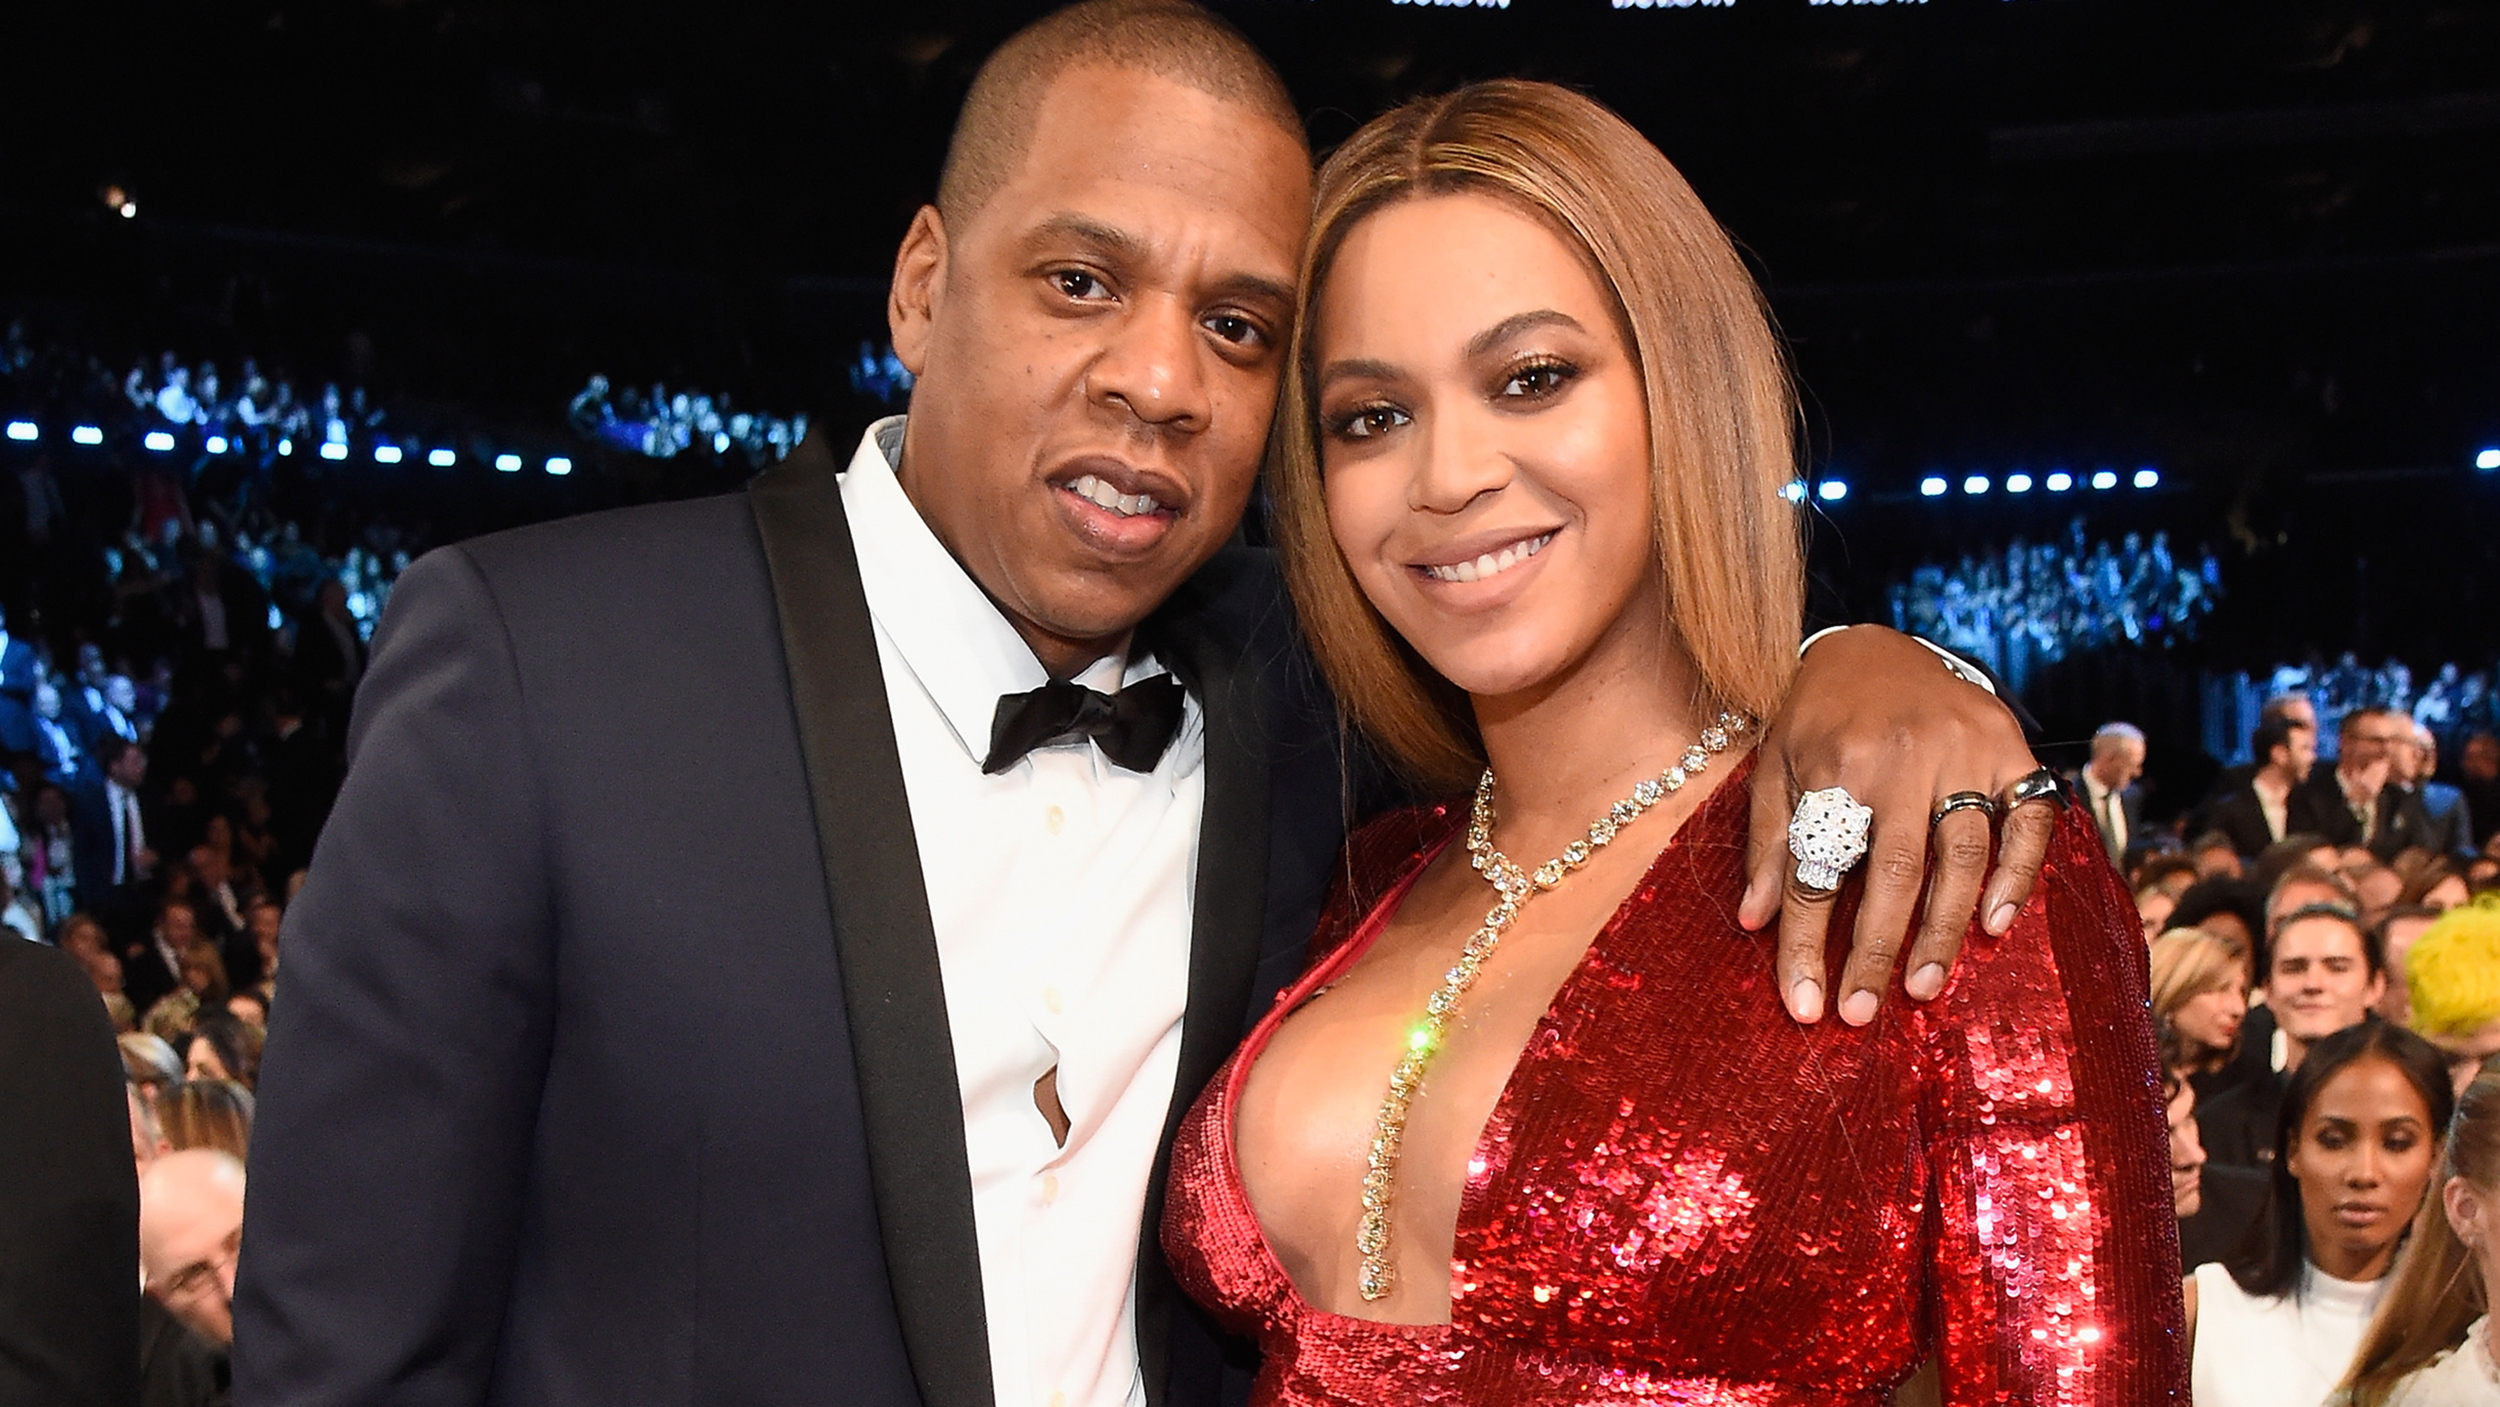 Image result for Beyoncé and Jay Z